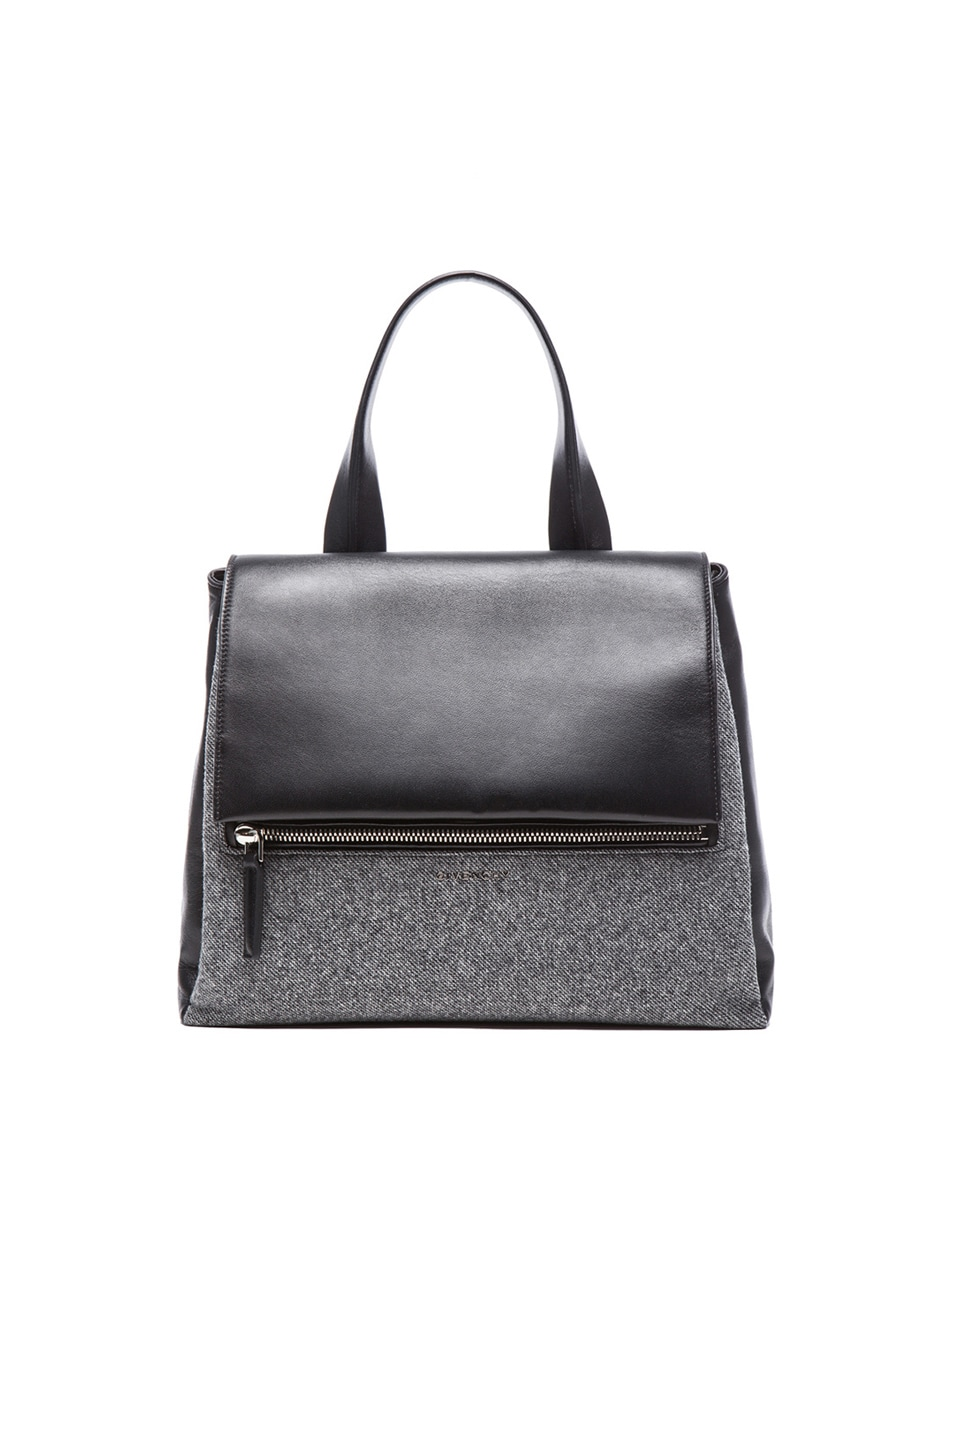 Image 1 of Givenchy Medium Pandora Flap Bag in Dark Grey